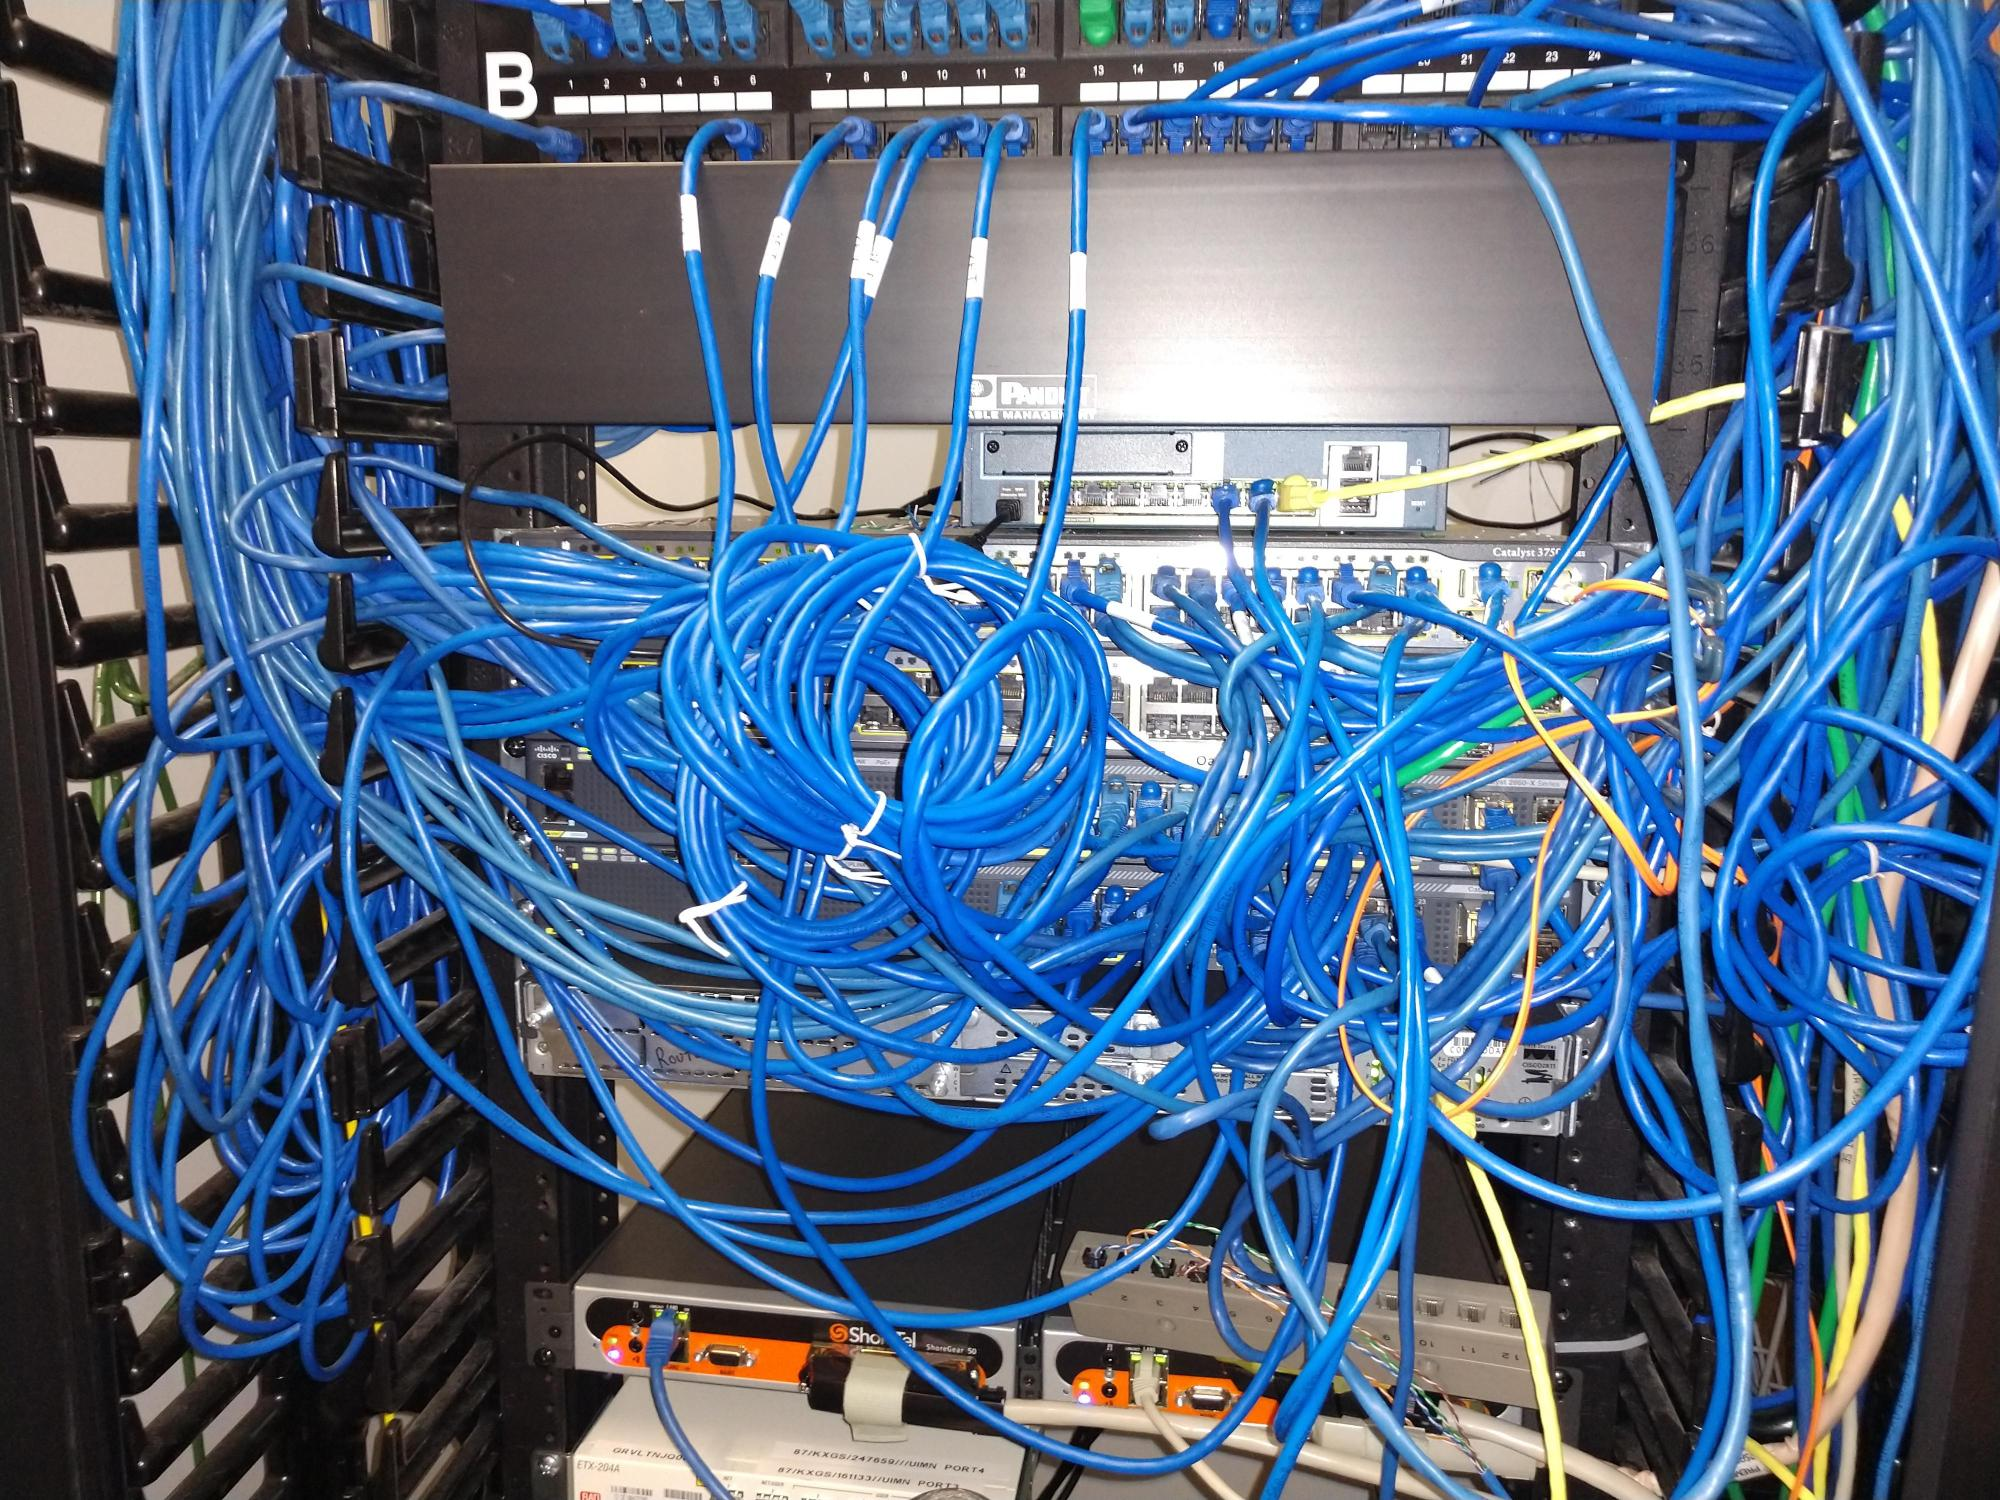 hight resolution of cabling vendors always do neat work